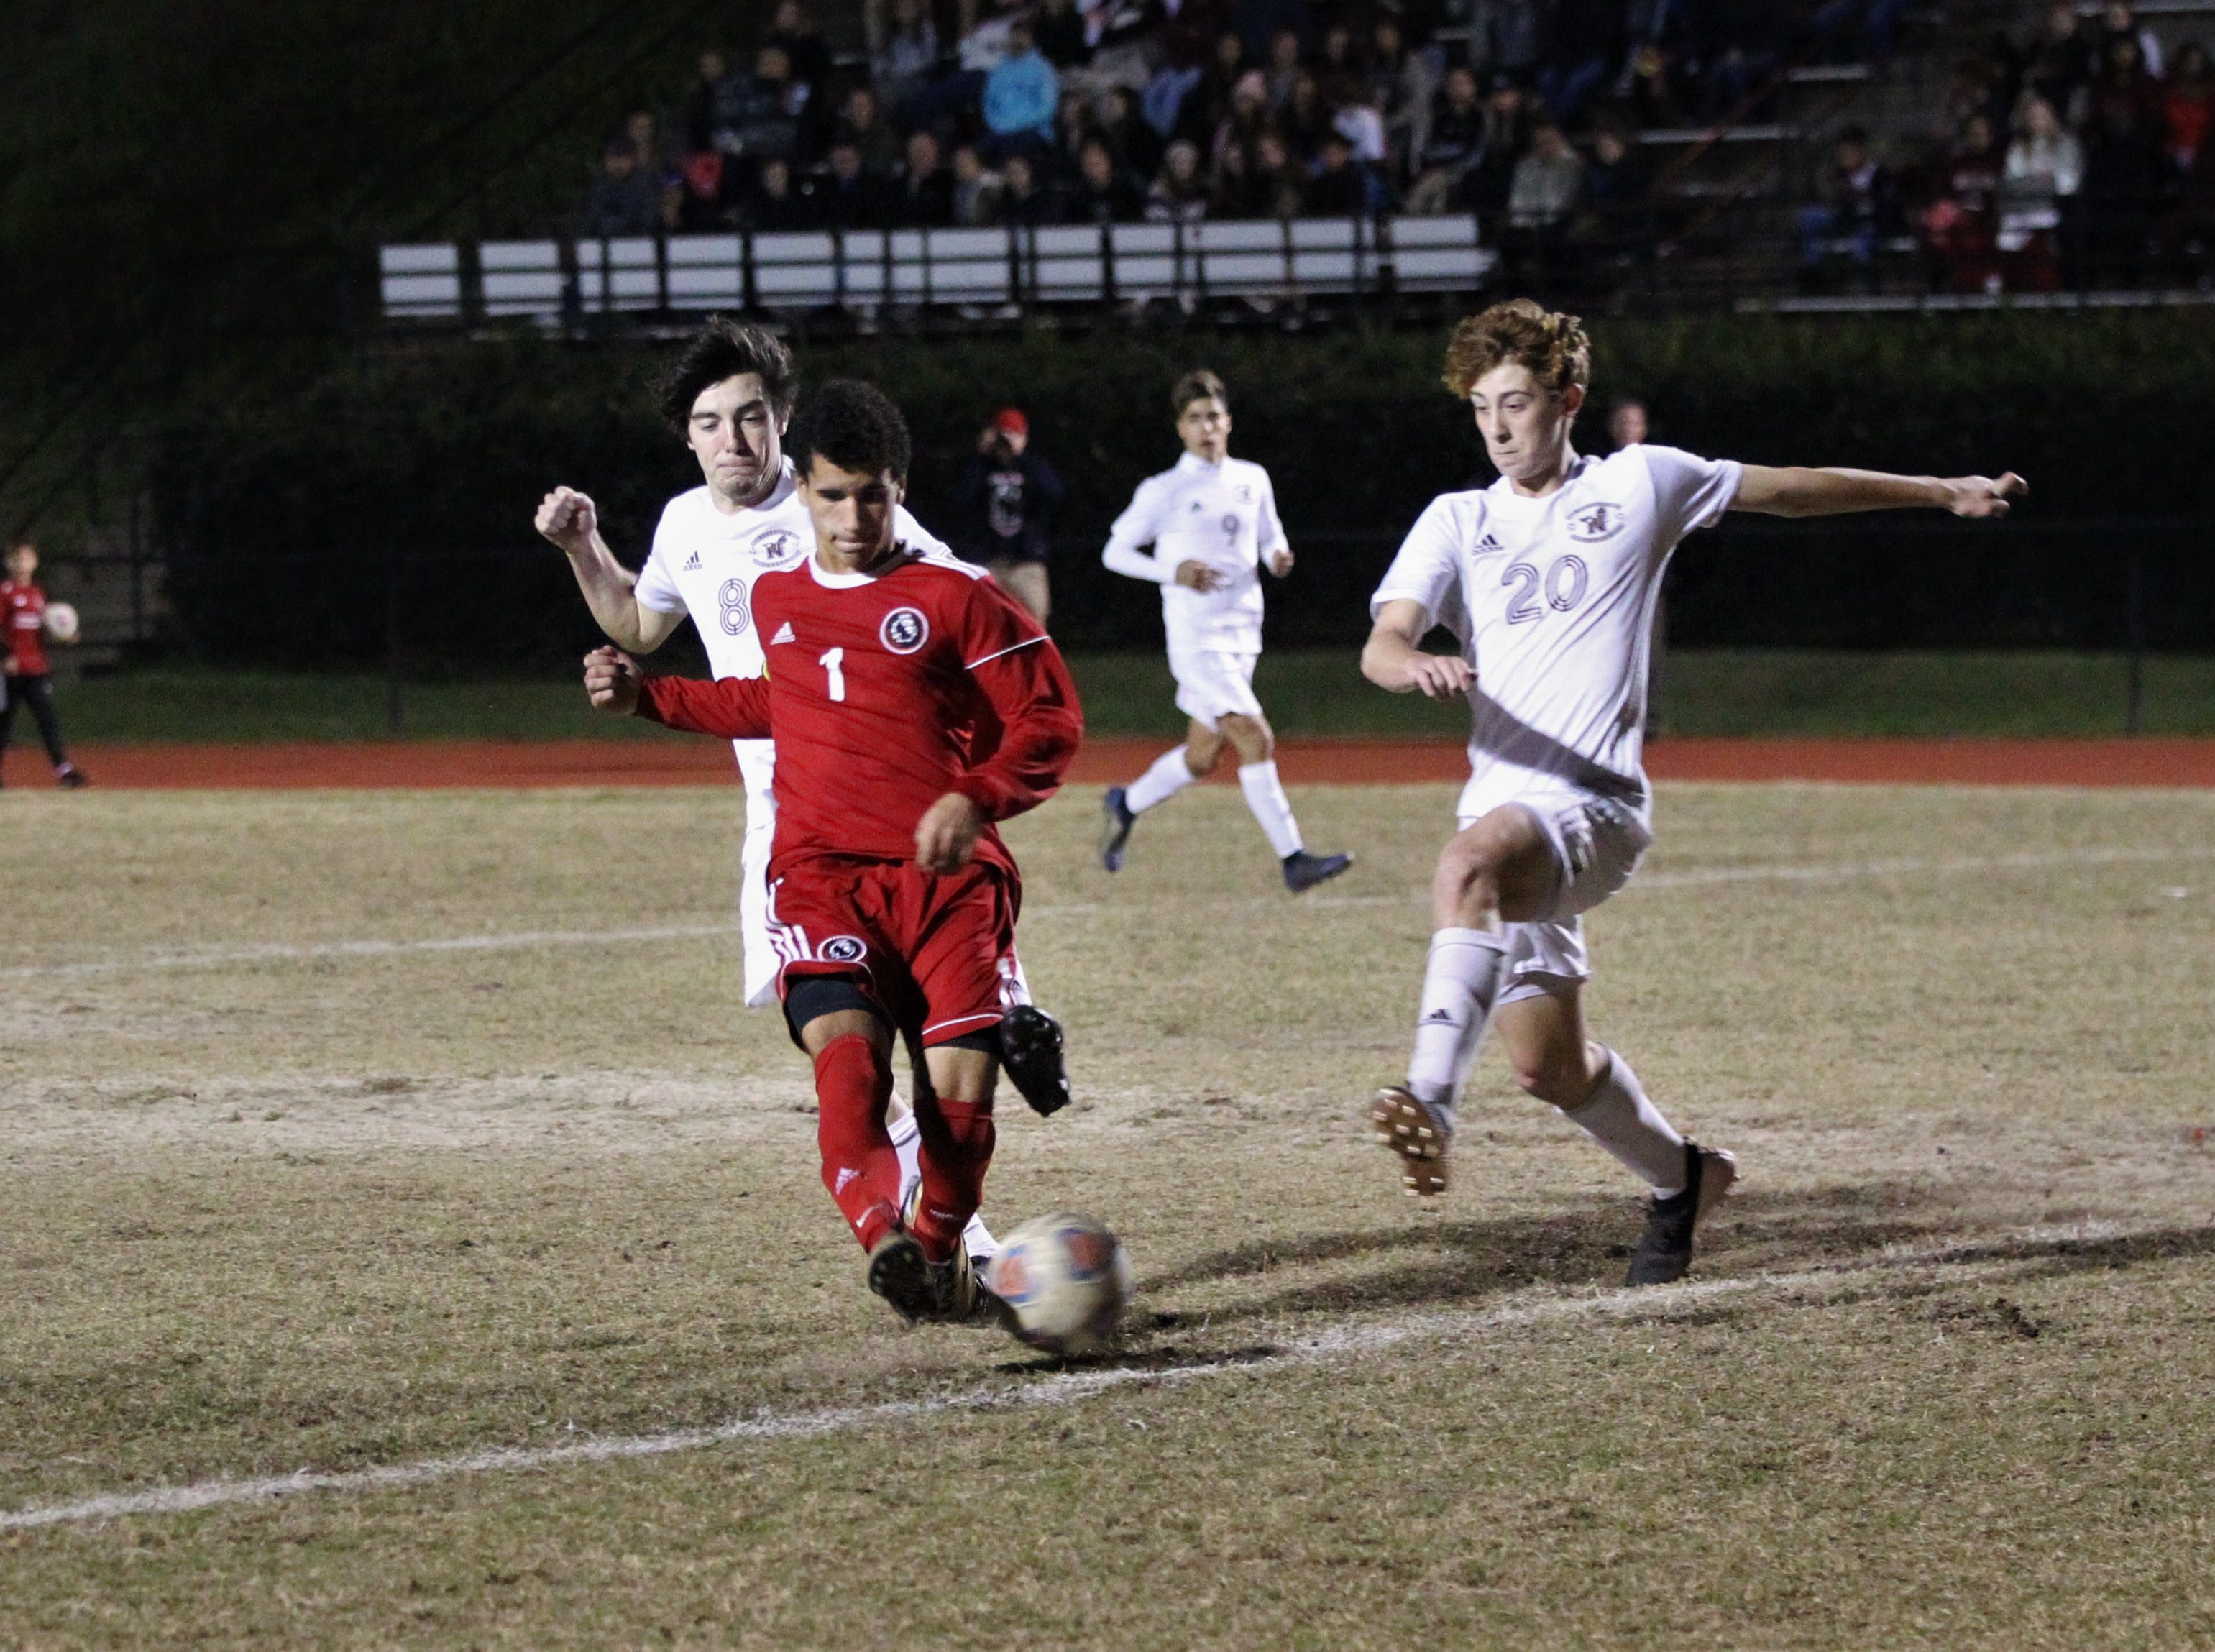 Leon's Sy Fontenot tries to one-time a pass for a goal as the Lions' boys soccer team beat Niceville 1-0 in a Region 1-4A semifinal on Feb. 9, 2019.